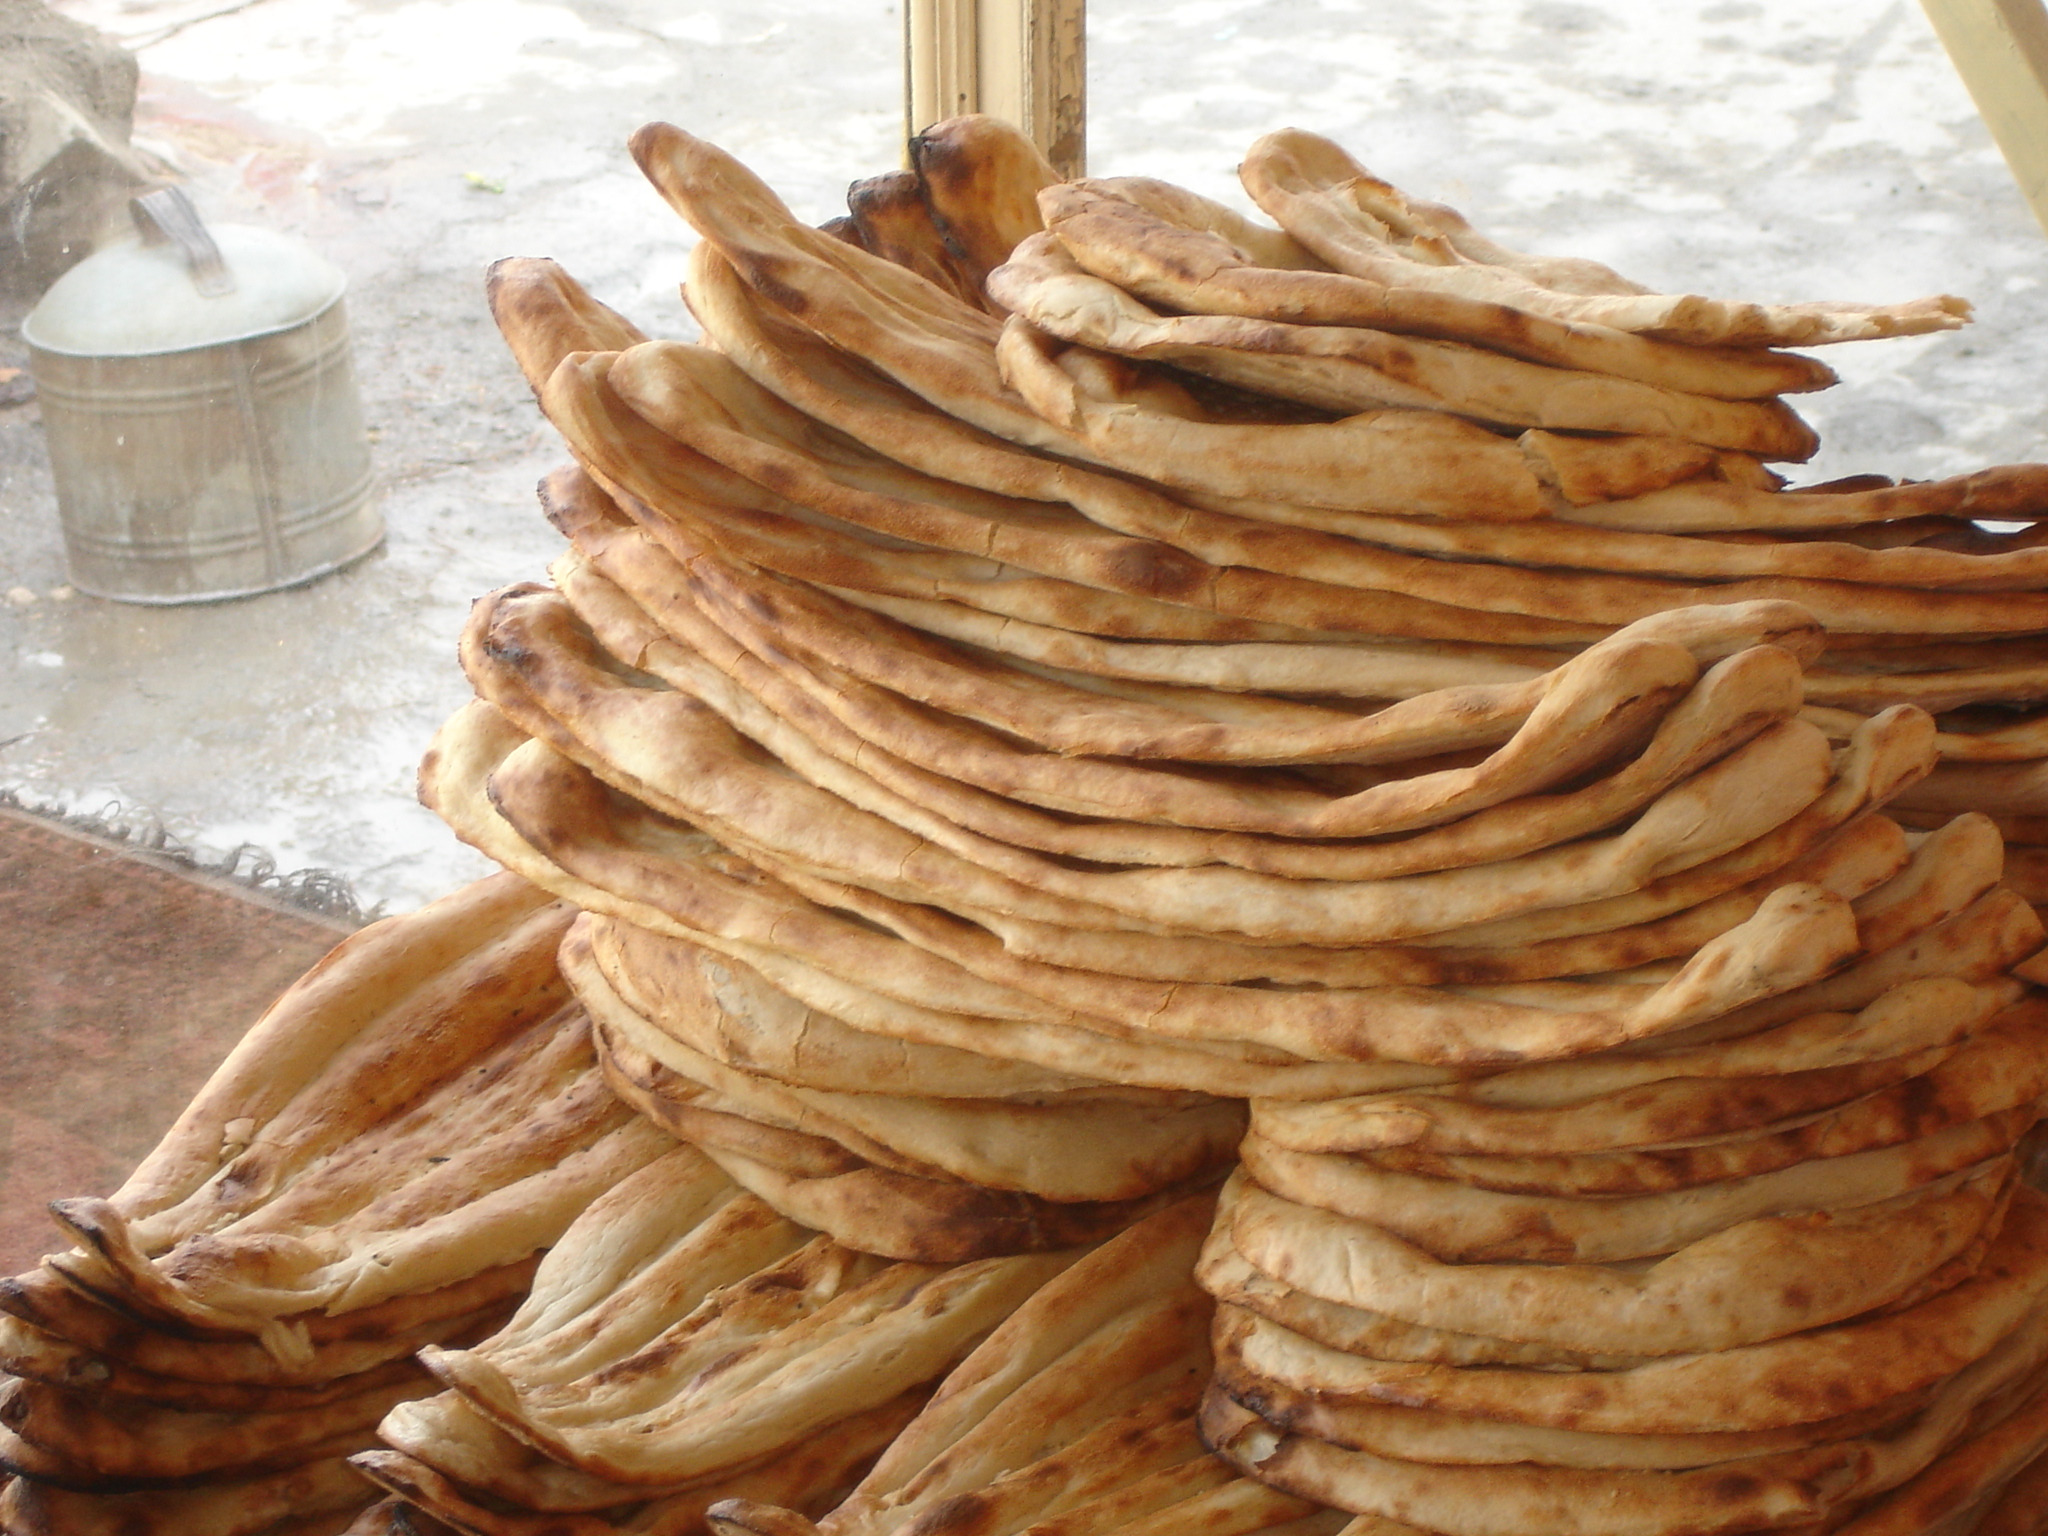 Bread is a staple part of the Afghan diet. Due to increasing wheat costs, bread too has gone up in price.